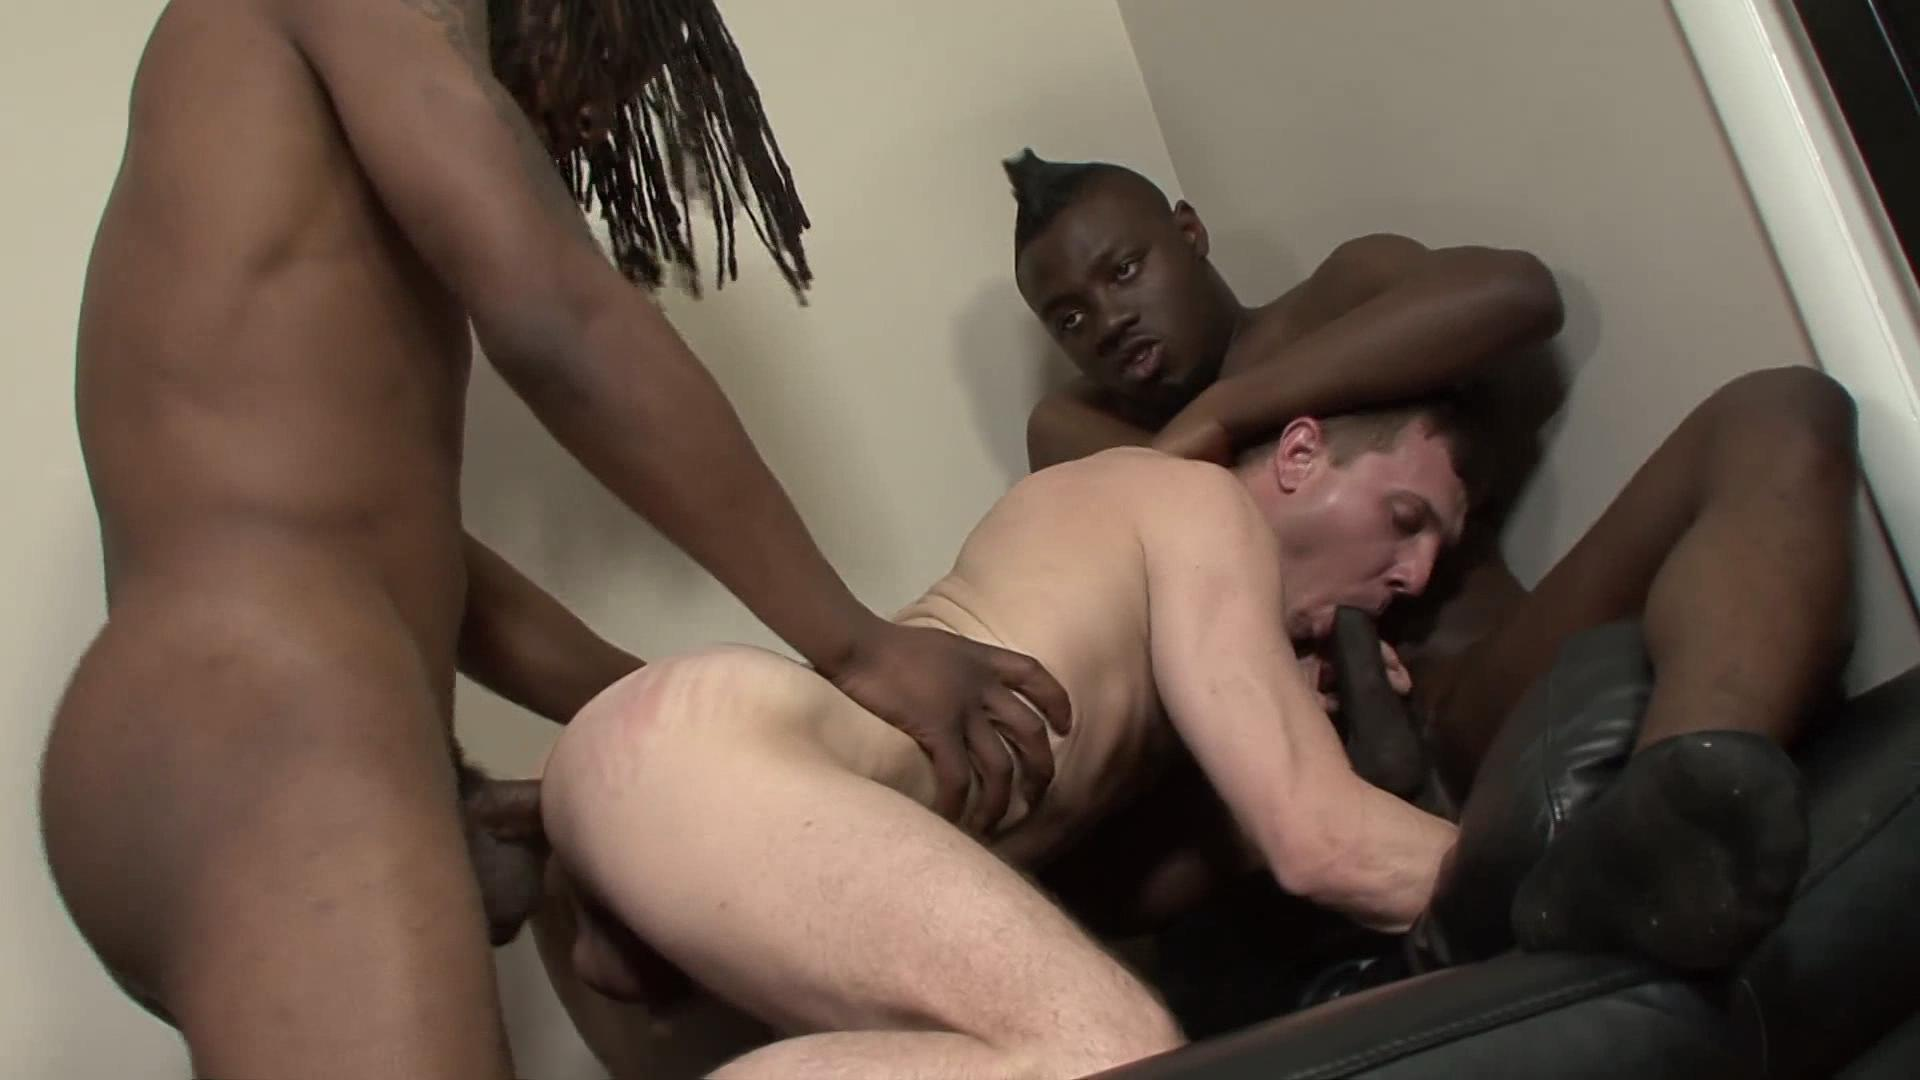 Interracial gay anal